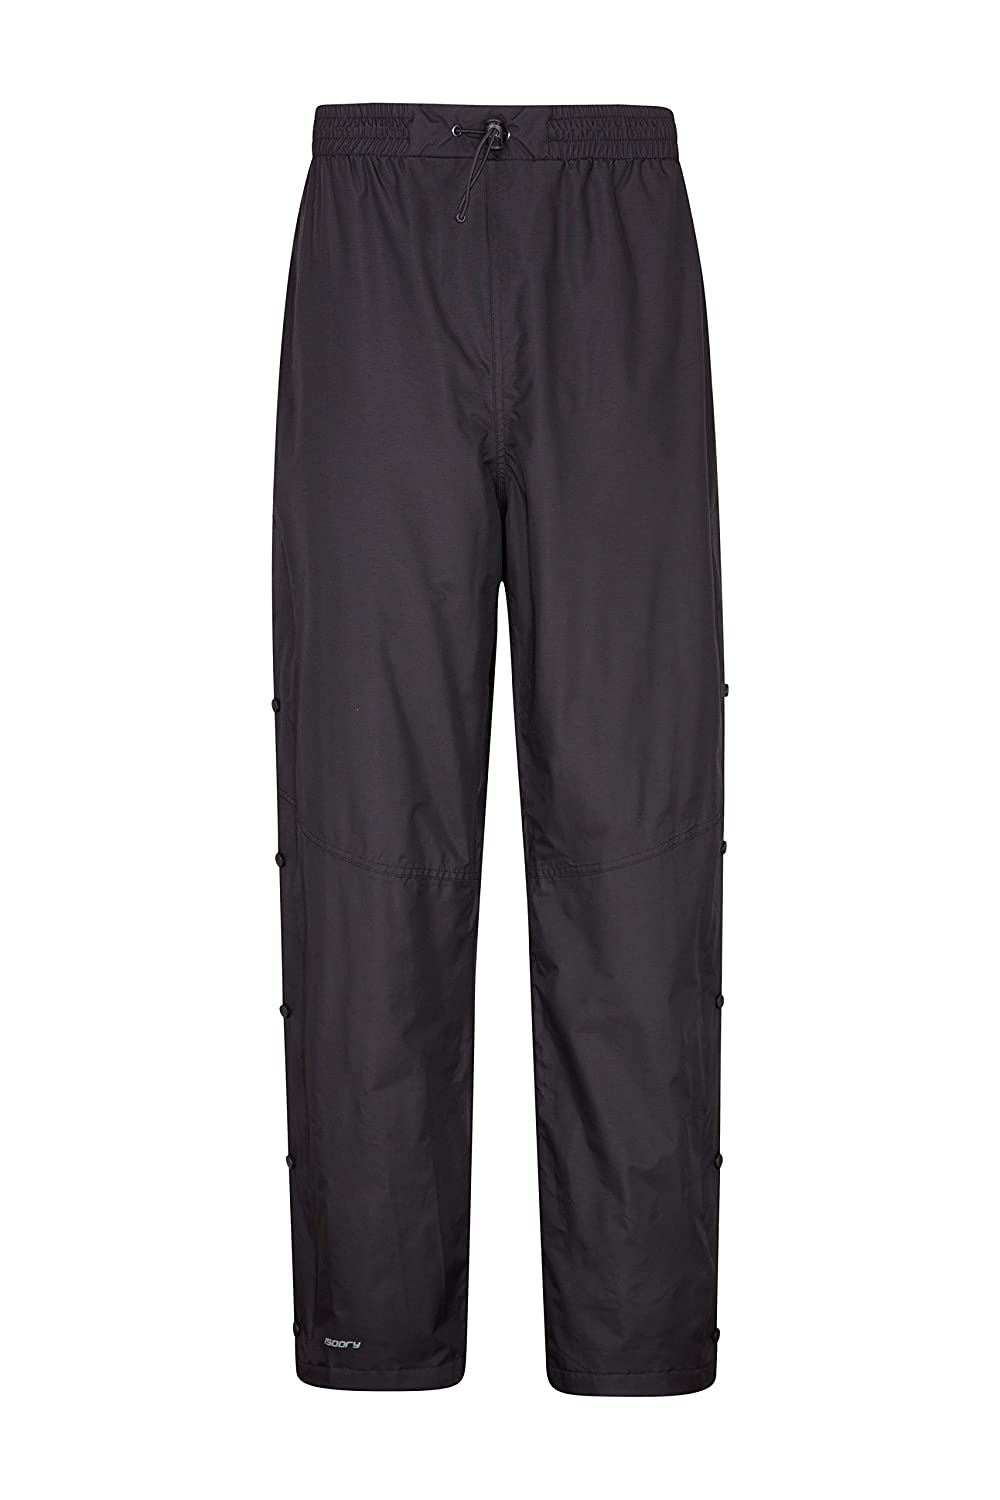 Mountain Warehouse Downpour Mens Trousers -Waterproof All Season Pants